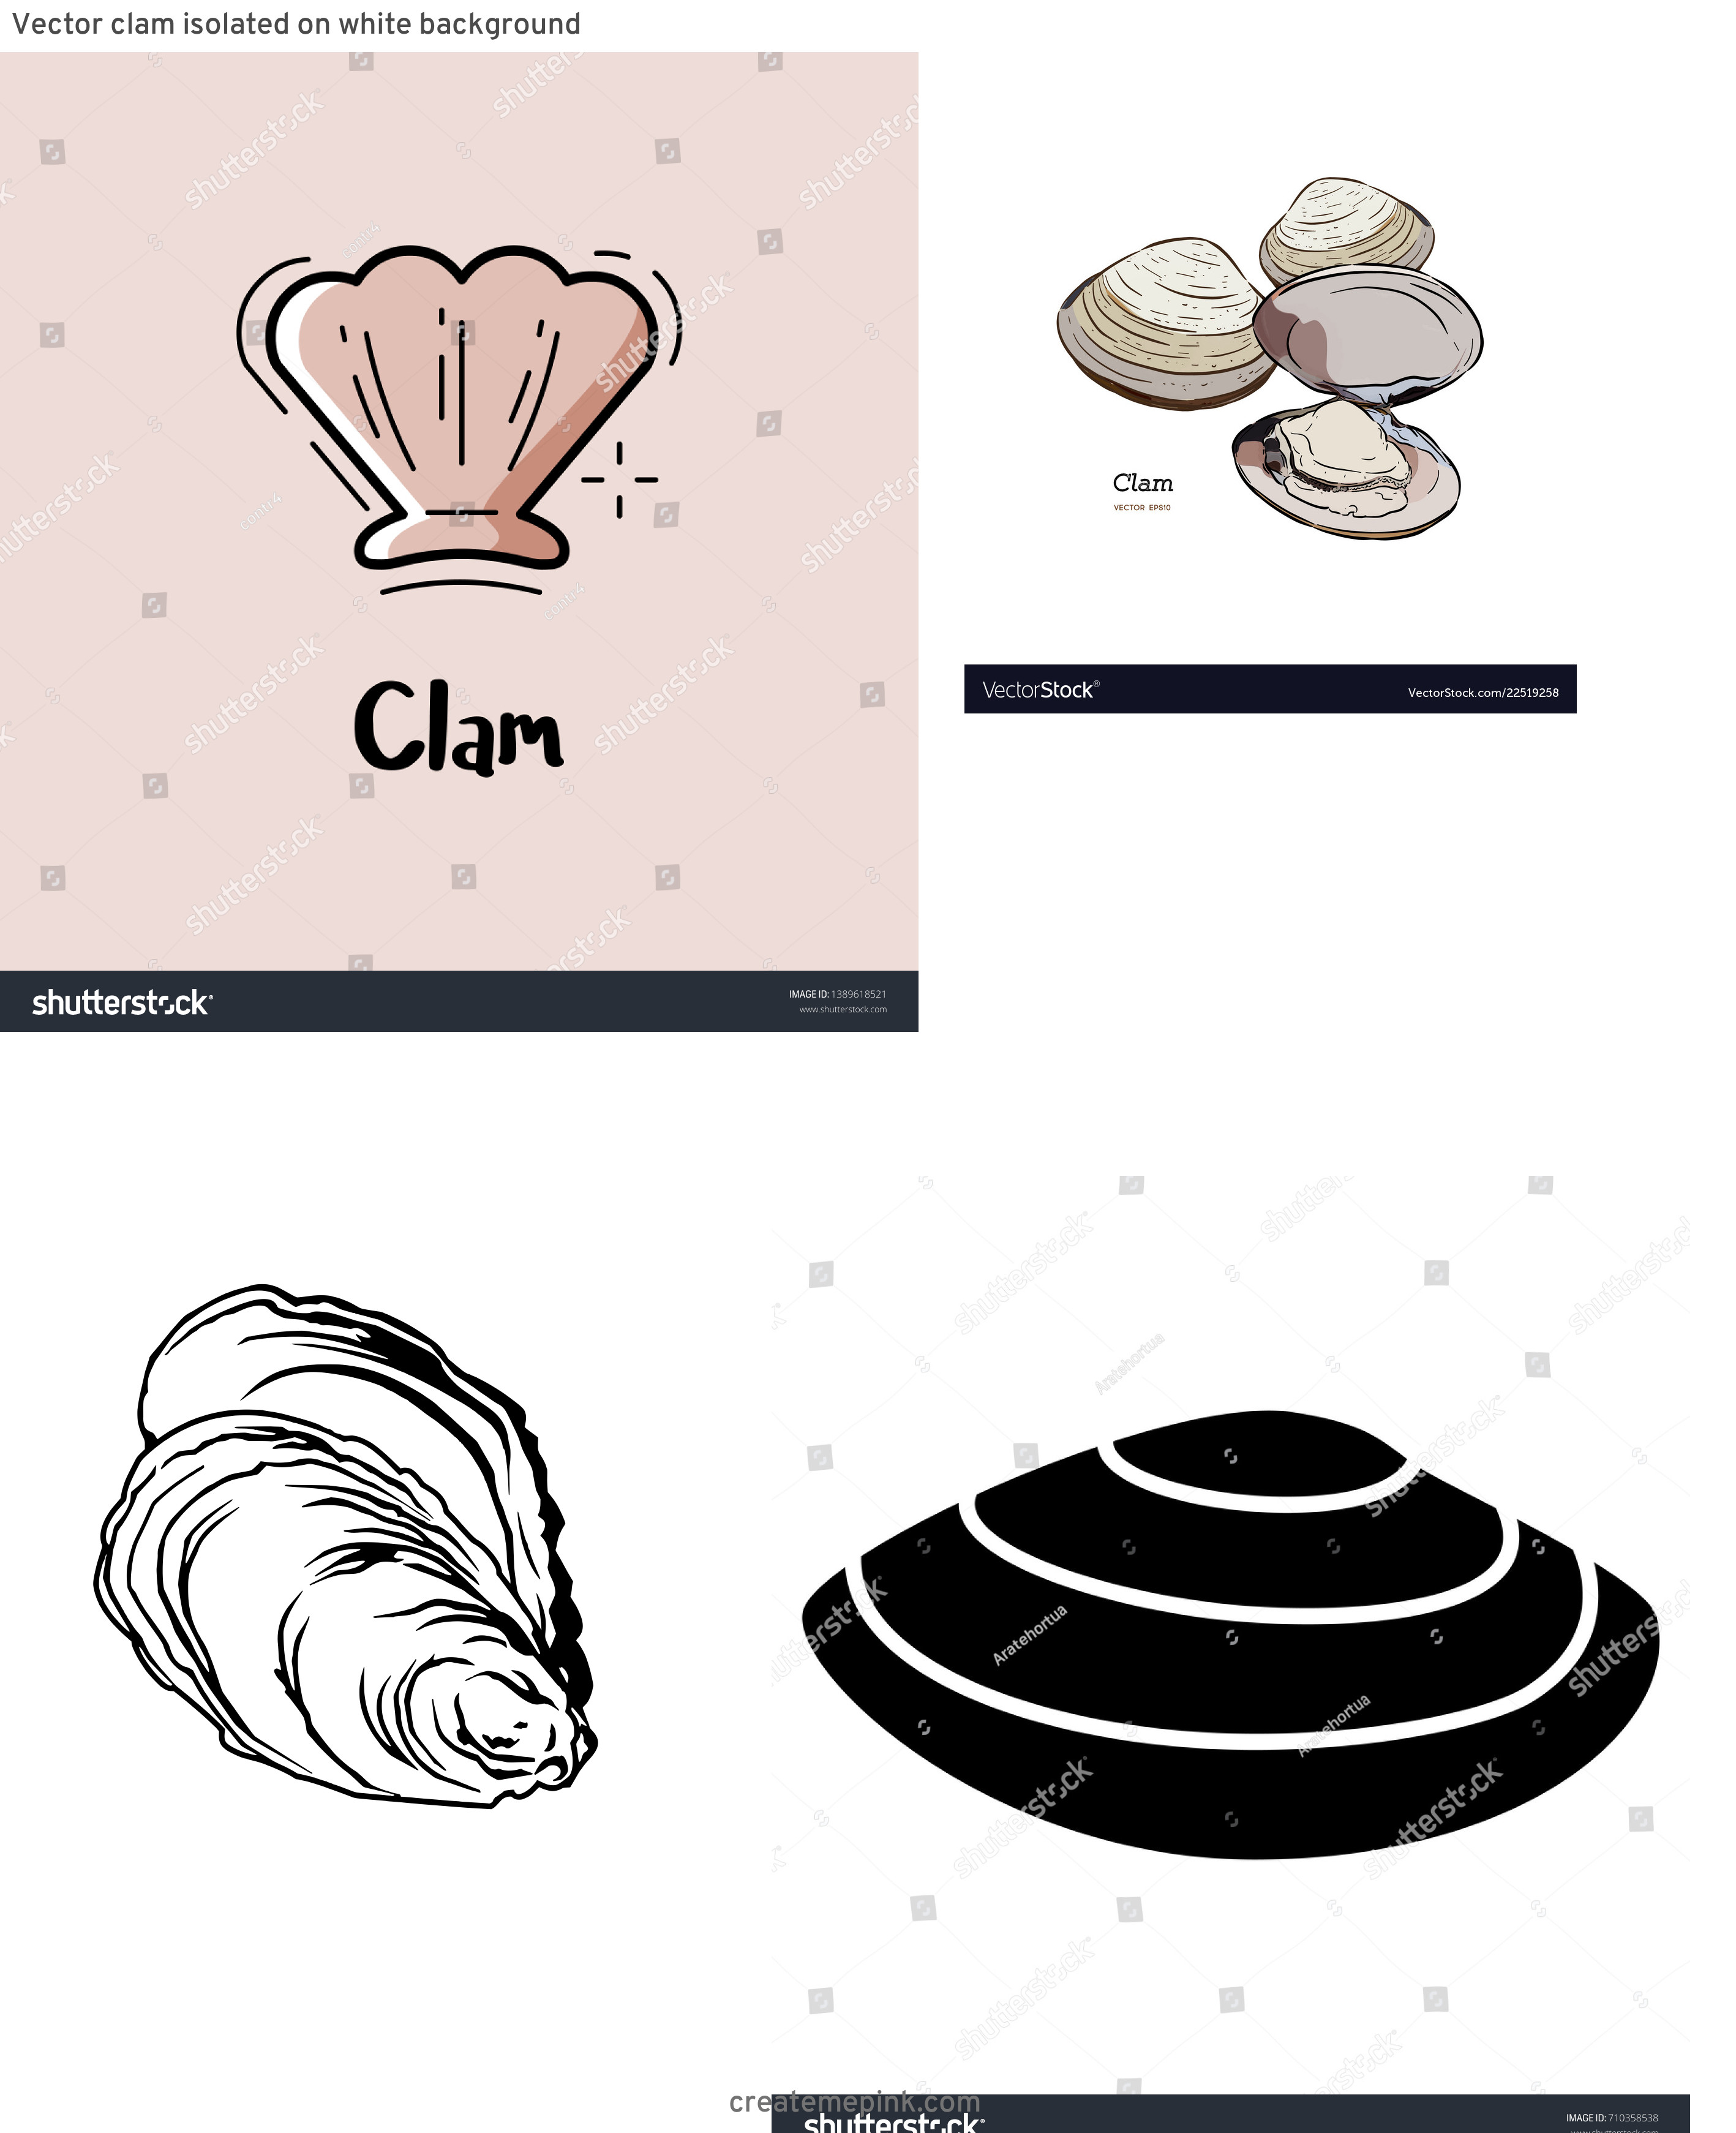 Clam Vector: Vector Clam Isolated On White Background